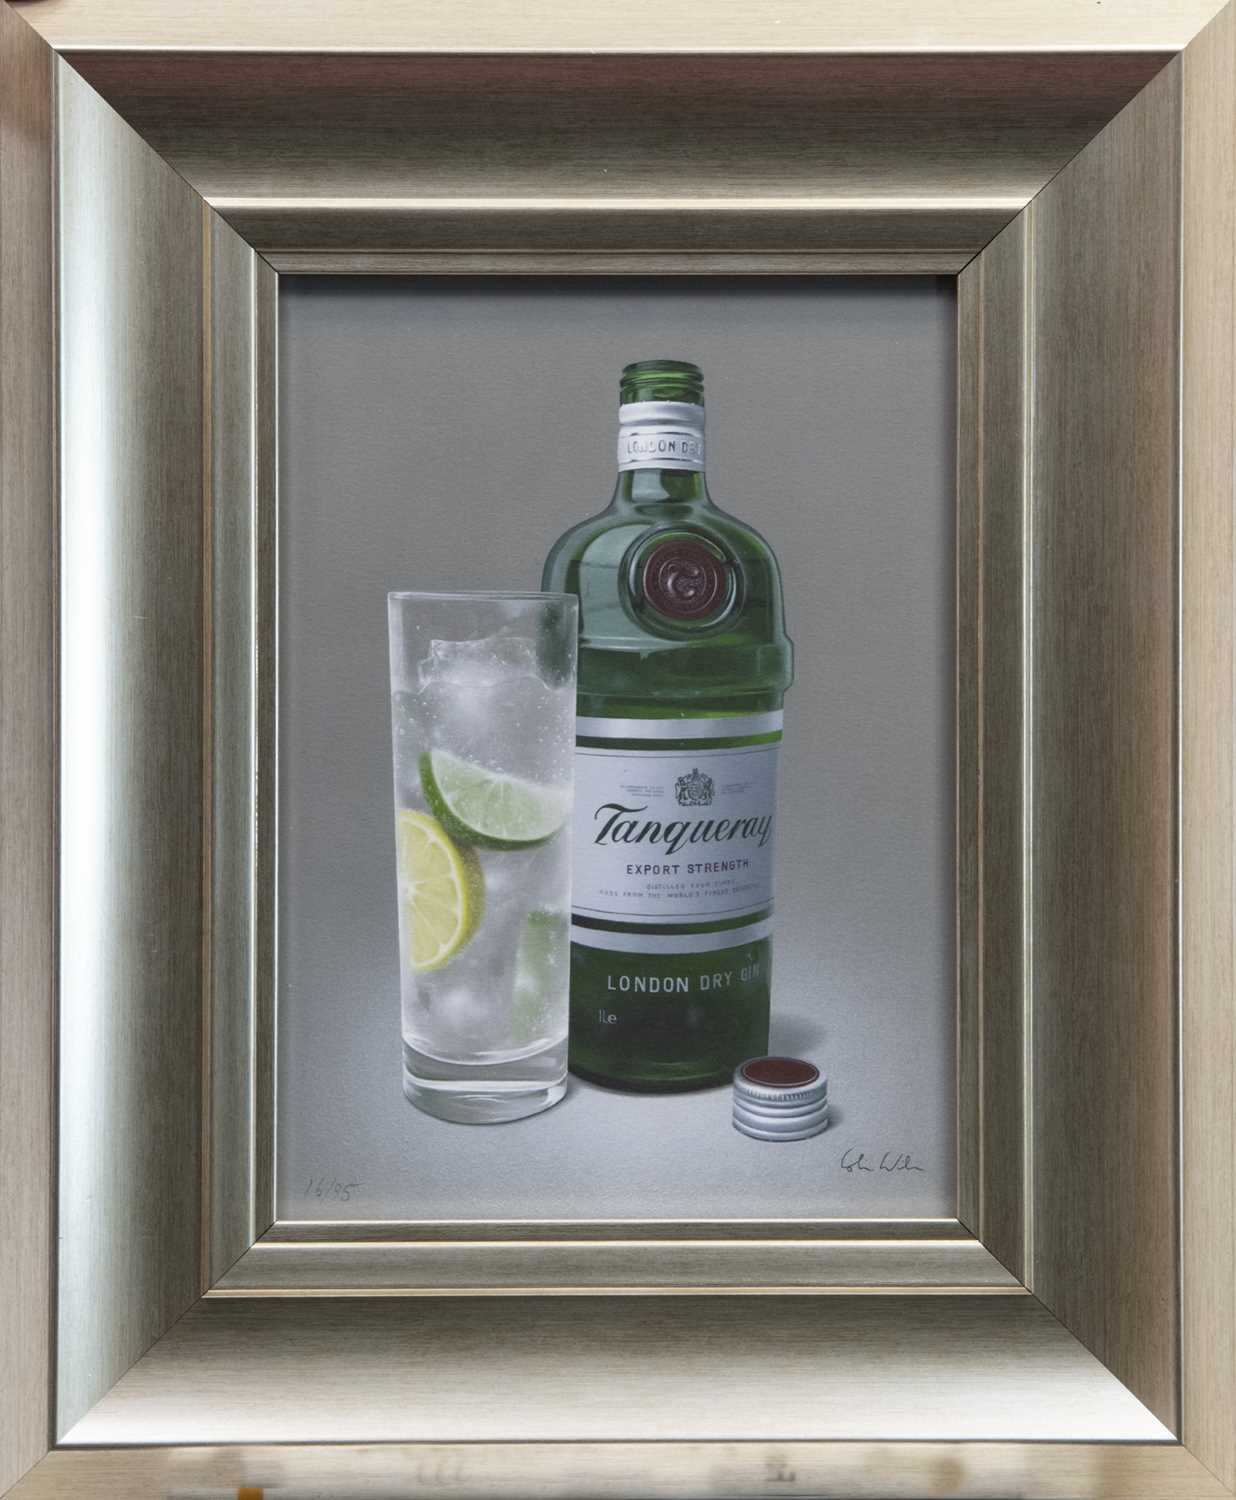 Lot 132 - TANTALISING TANQUERAY GIN, A GICLEE PRINT BY COLIN WILSON